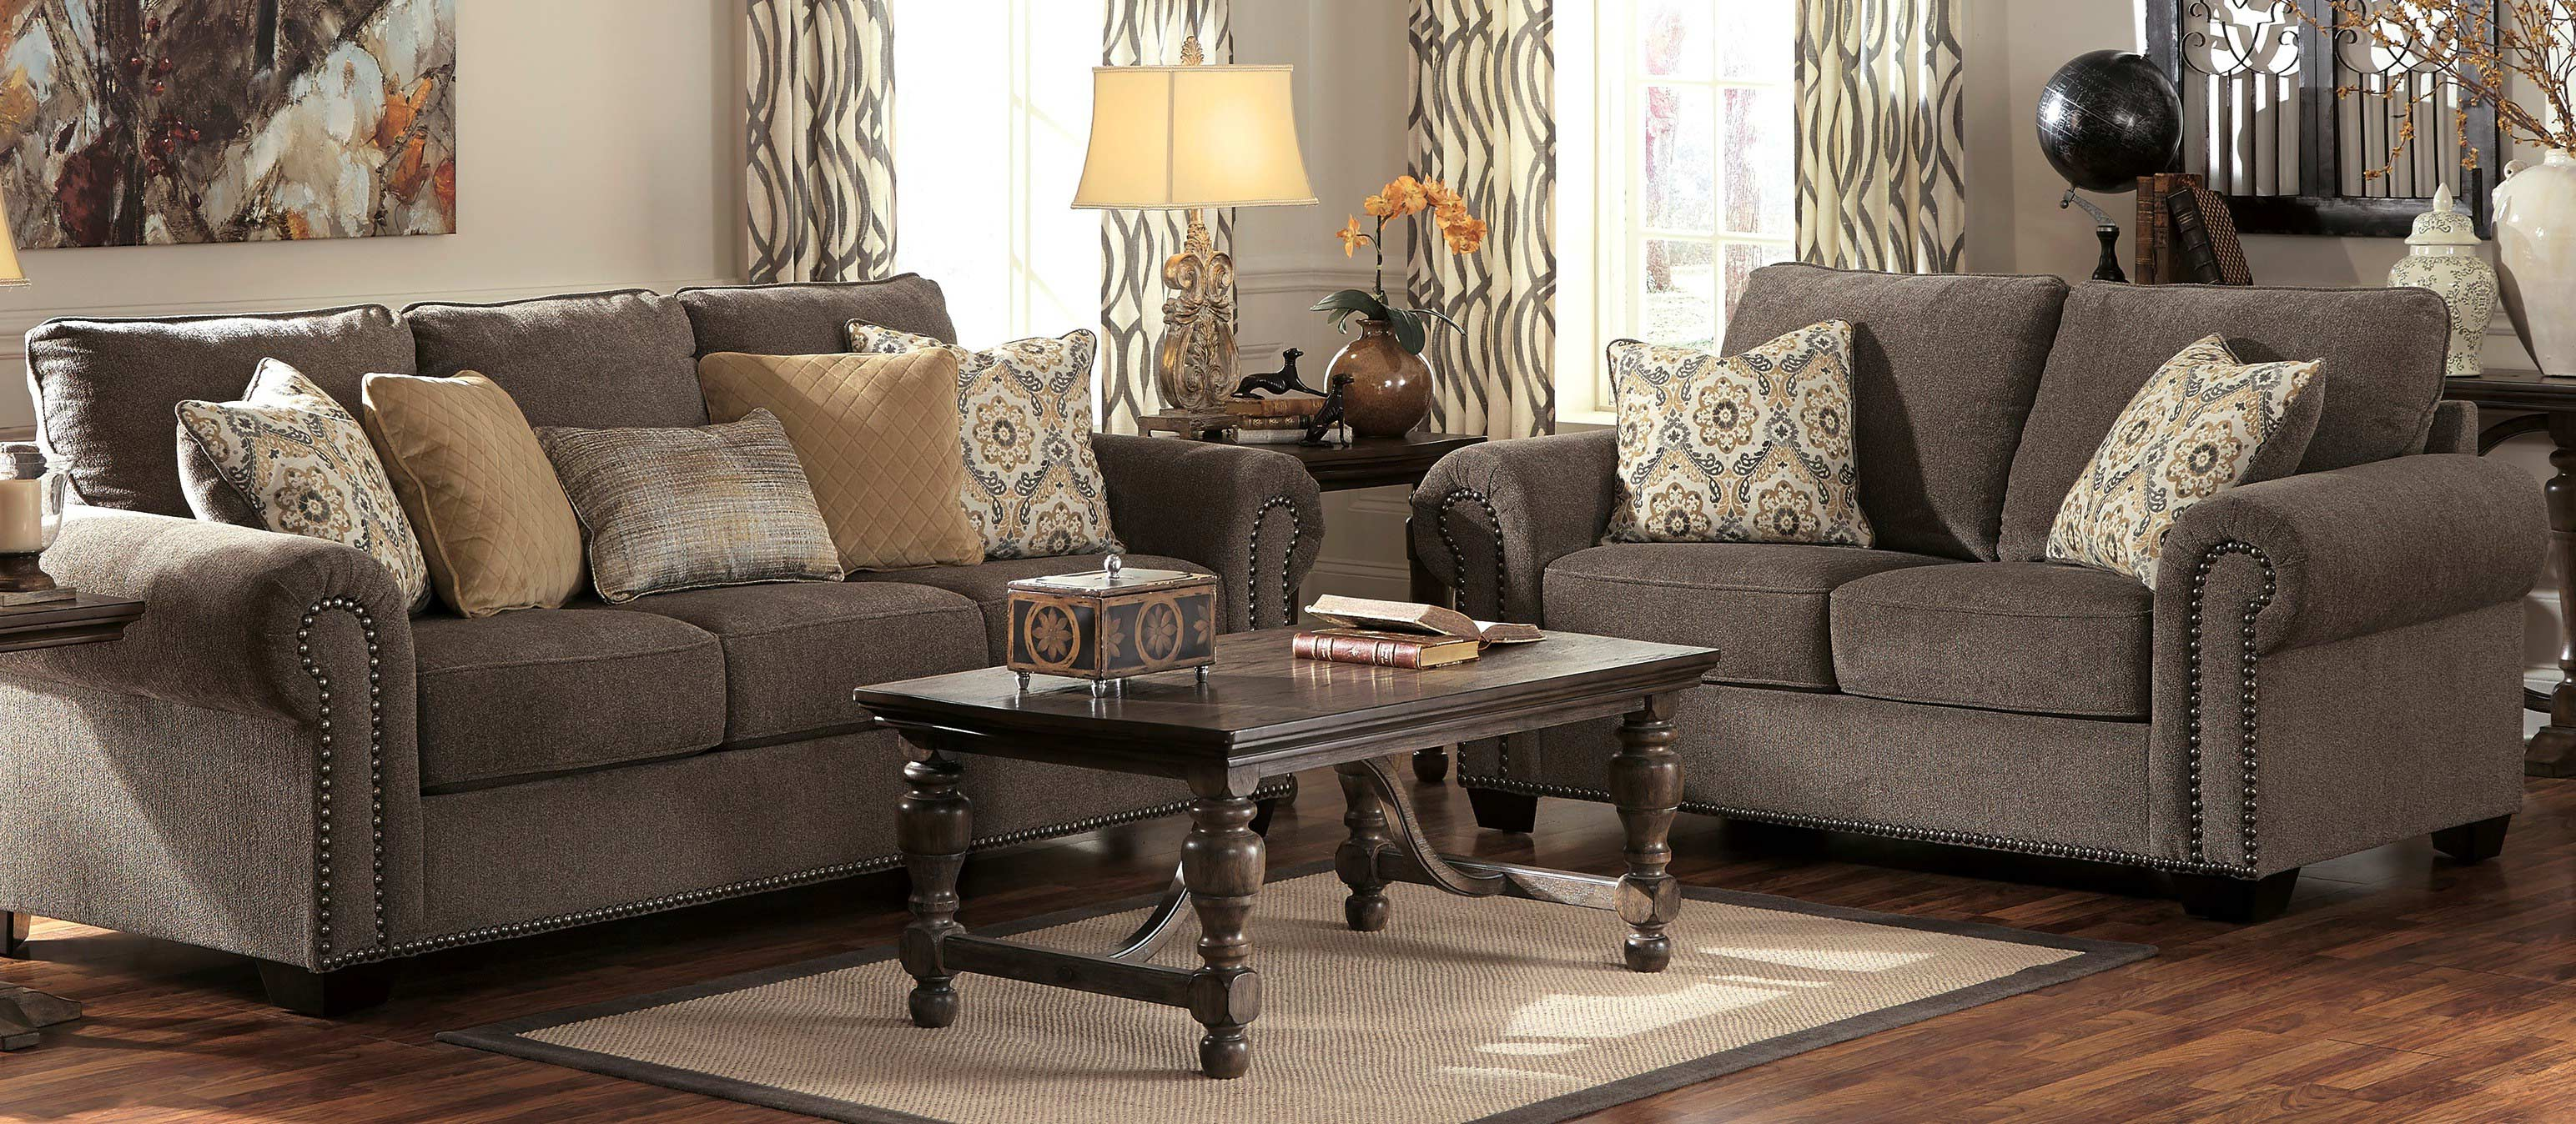 Value City Furniture Living Room Sets >> Rooms To Go Living Room Set Furnitures | Roy Home Design